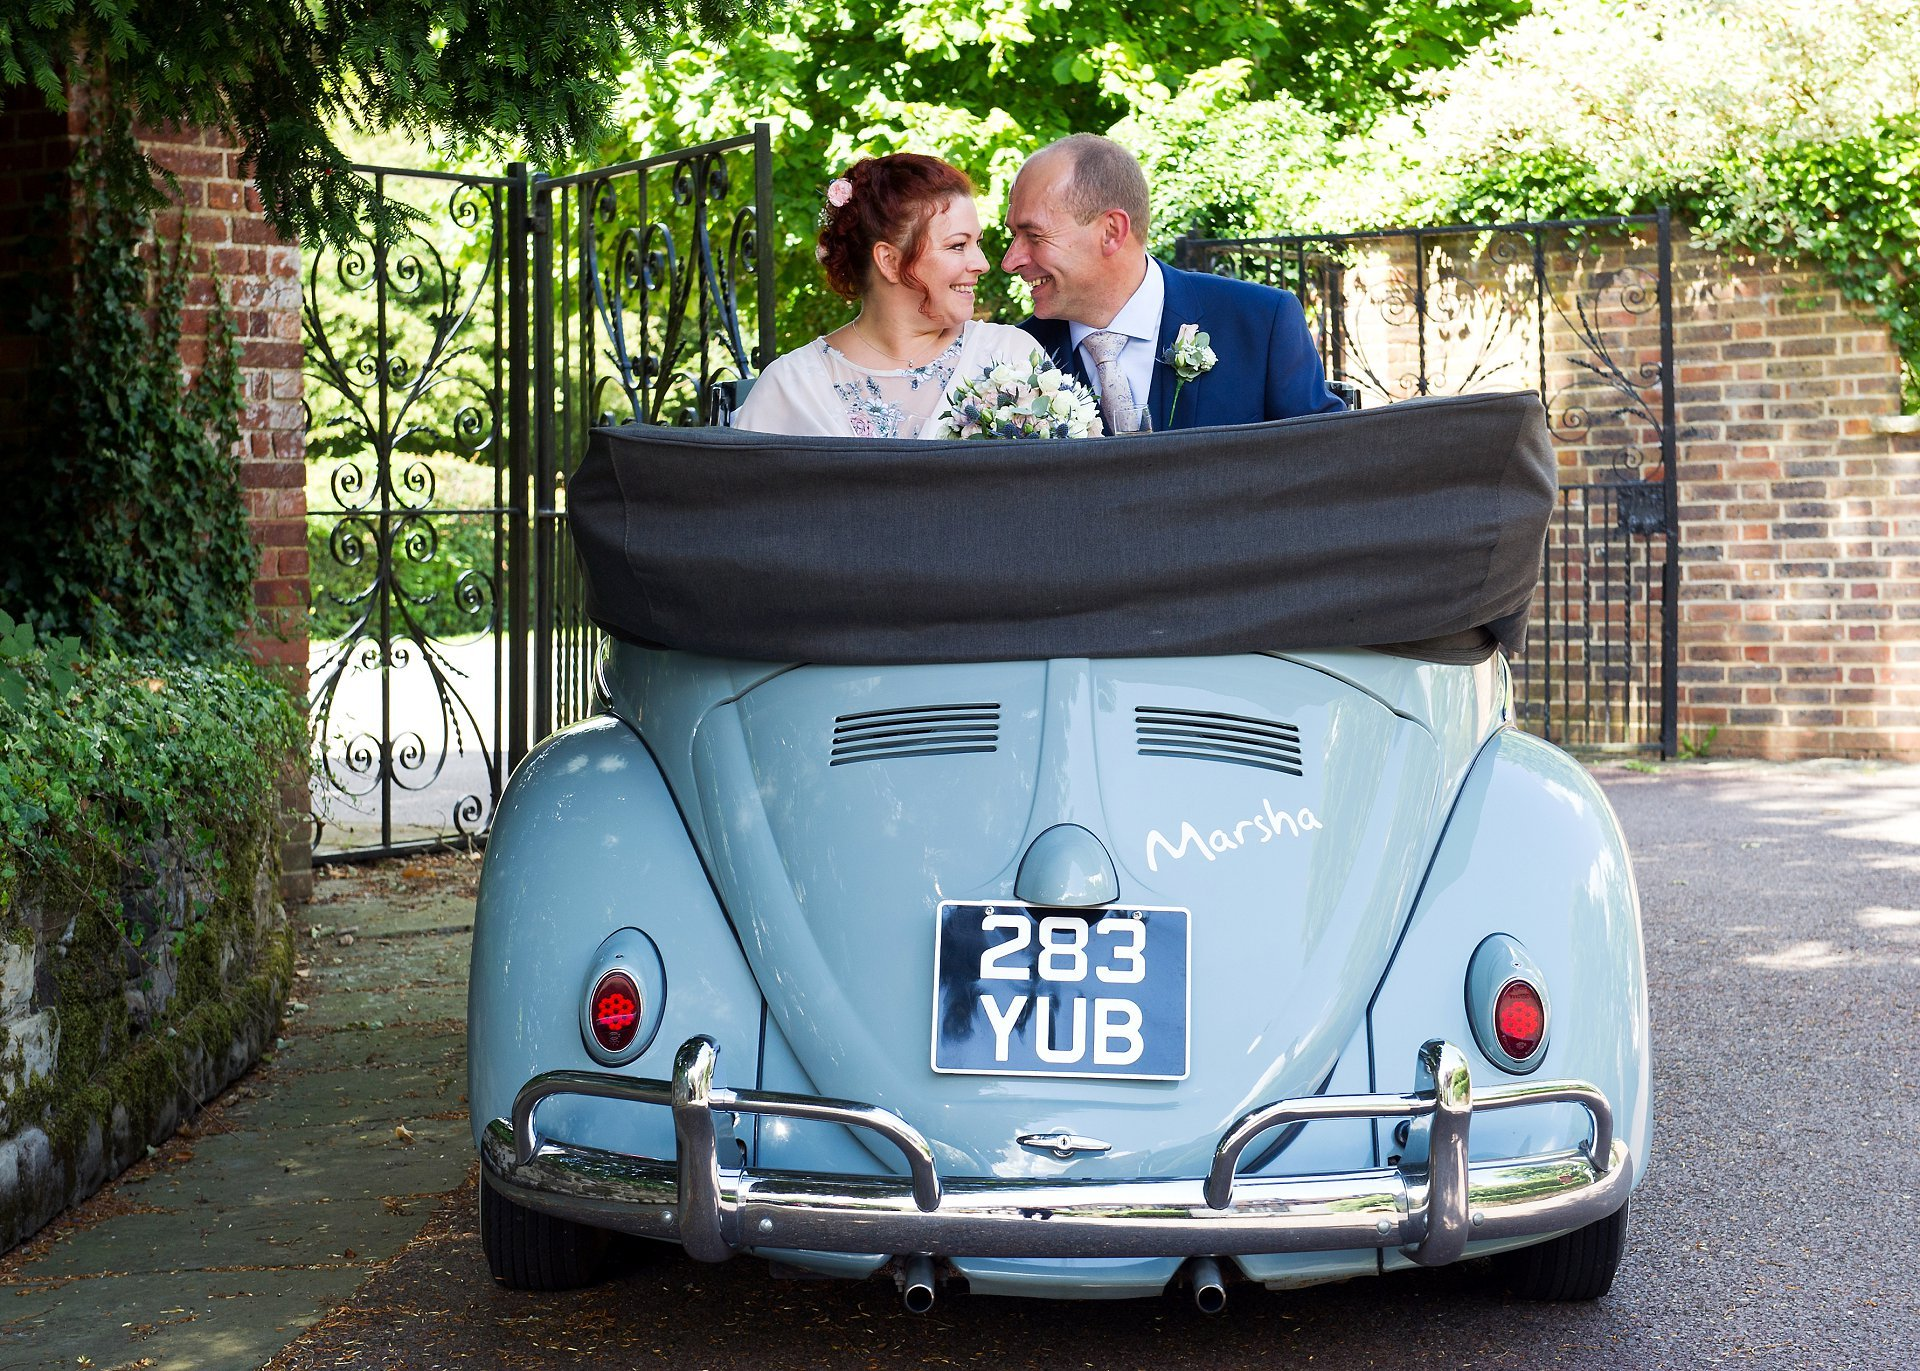 Bride and groom in their VW Beetle wedding car just after their Horsham Registry Office wedding having arrived at their reception venue, Ghyll Manor in Rusper